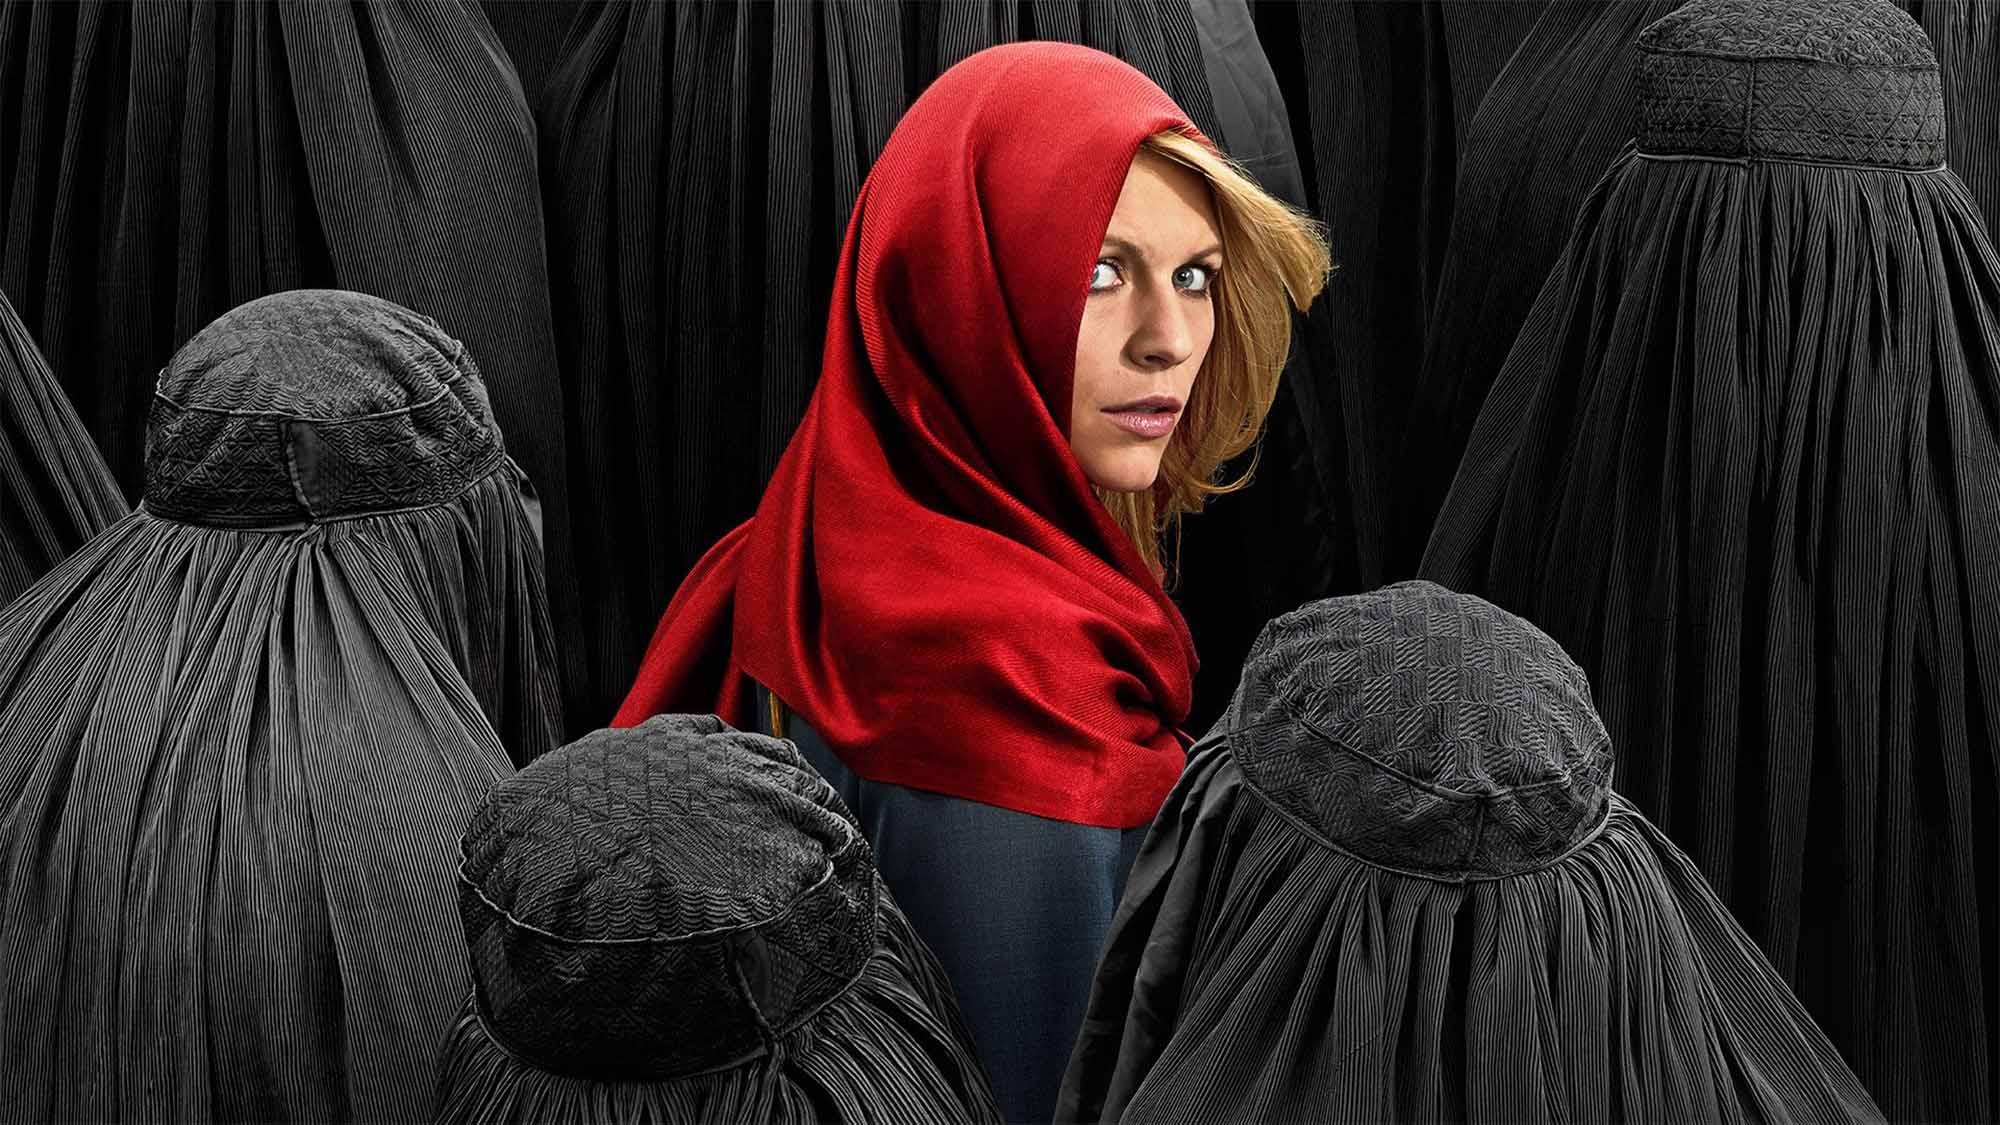 How did the 'Homeland' S7 finale stack up with its predecessors? Here's our ranking of the best 'Homeland' finales so far.